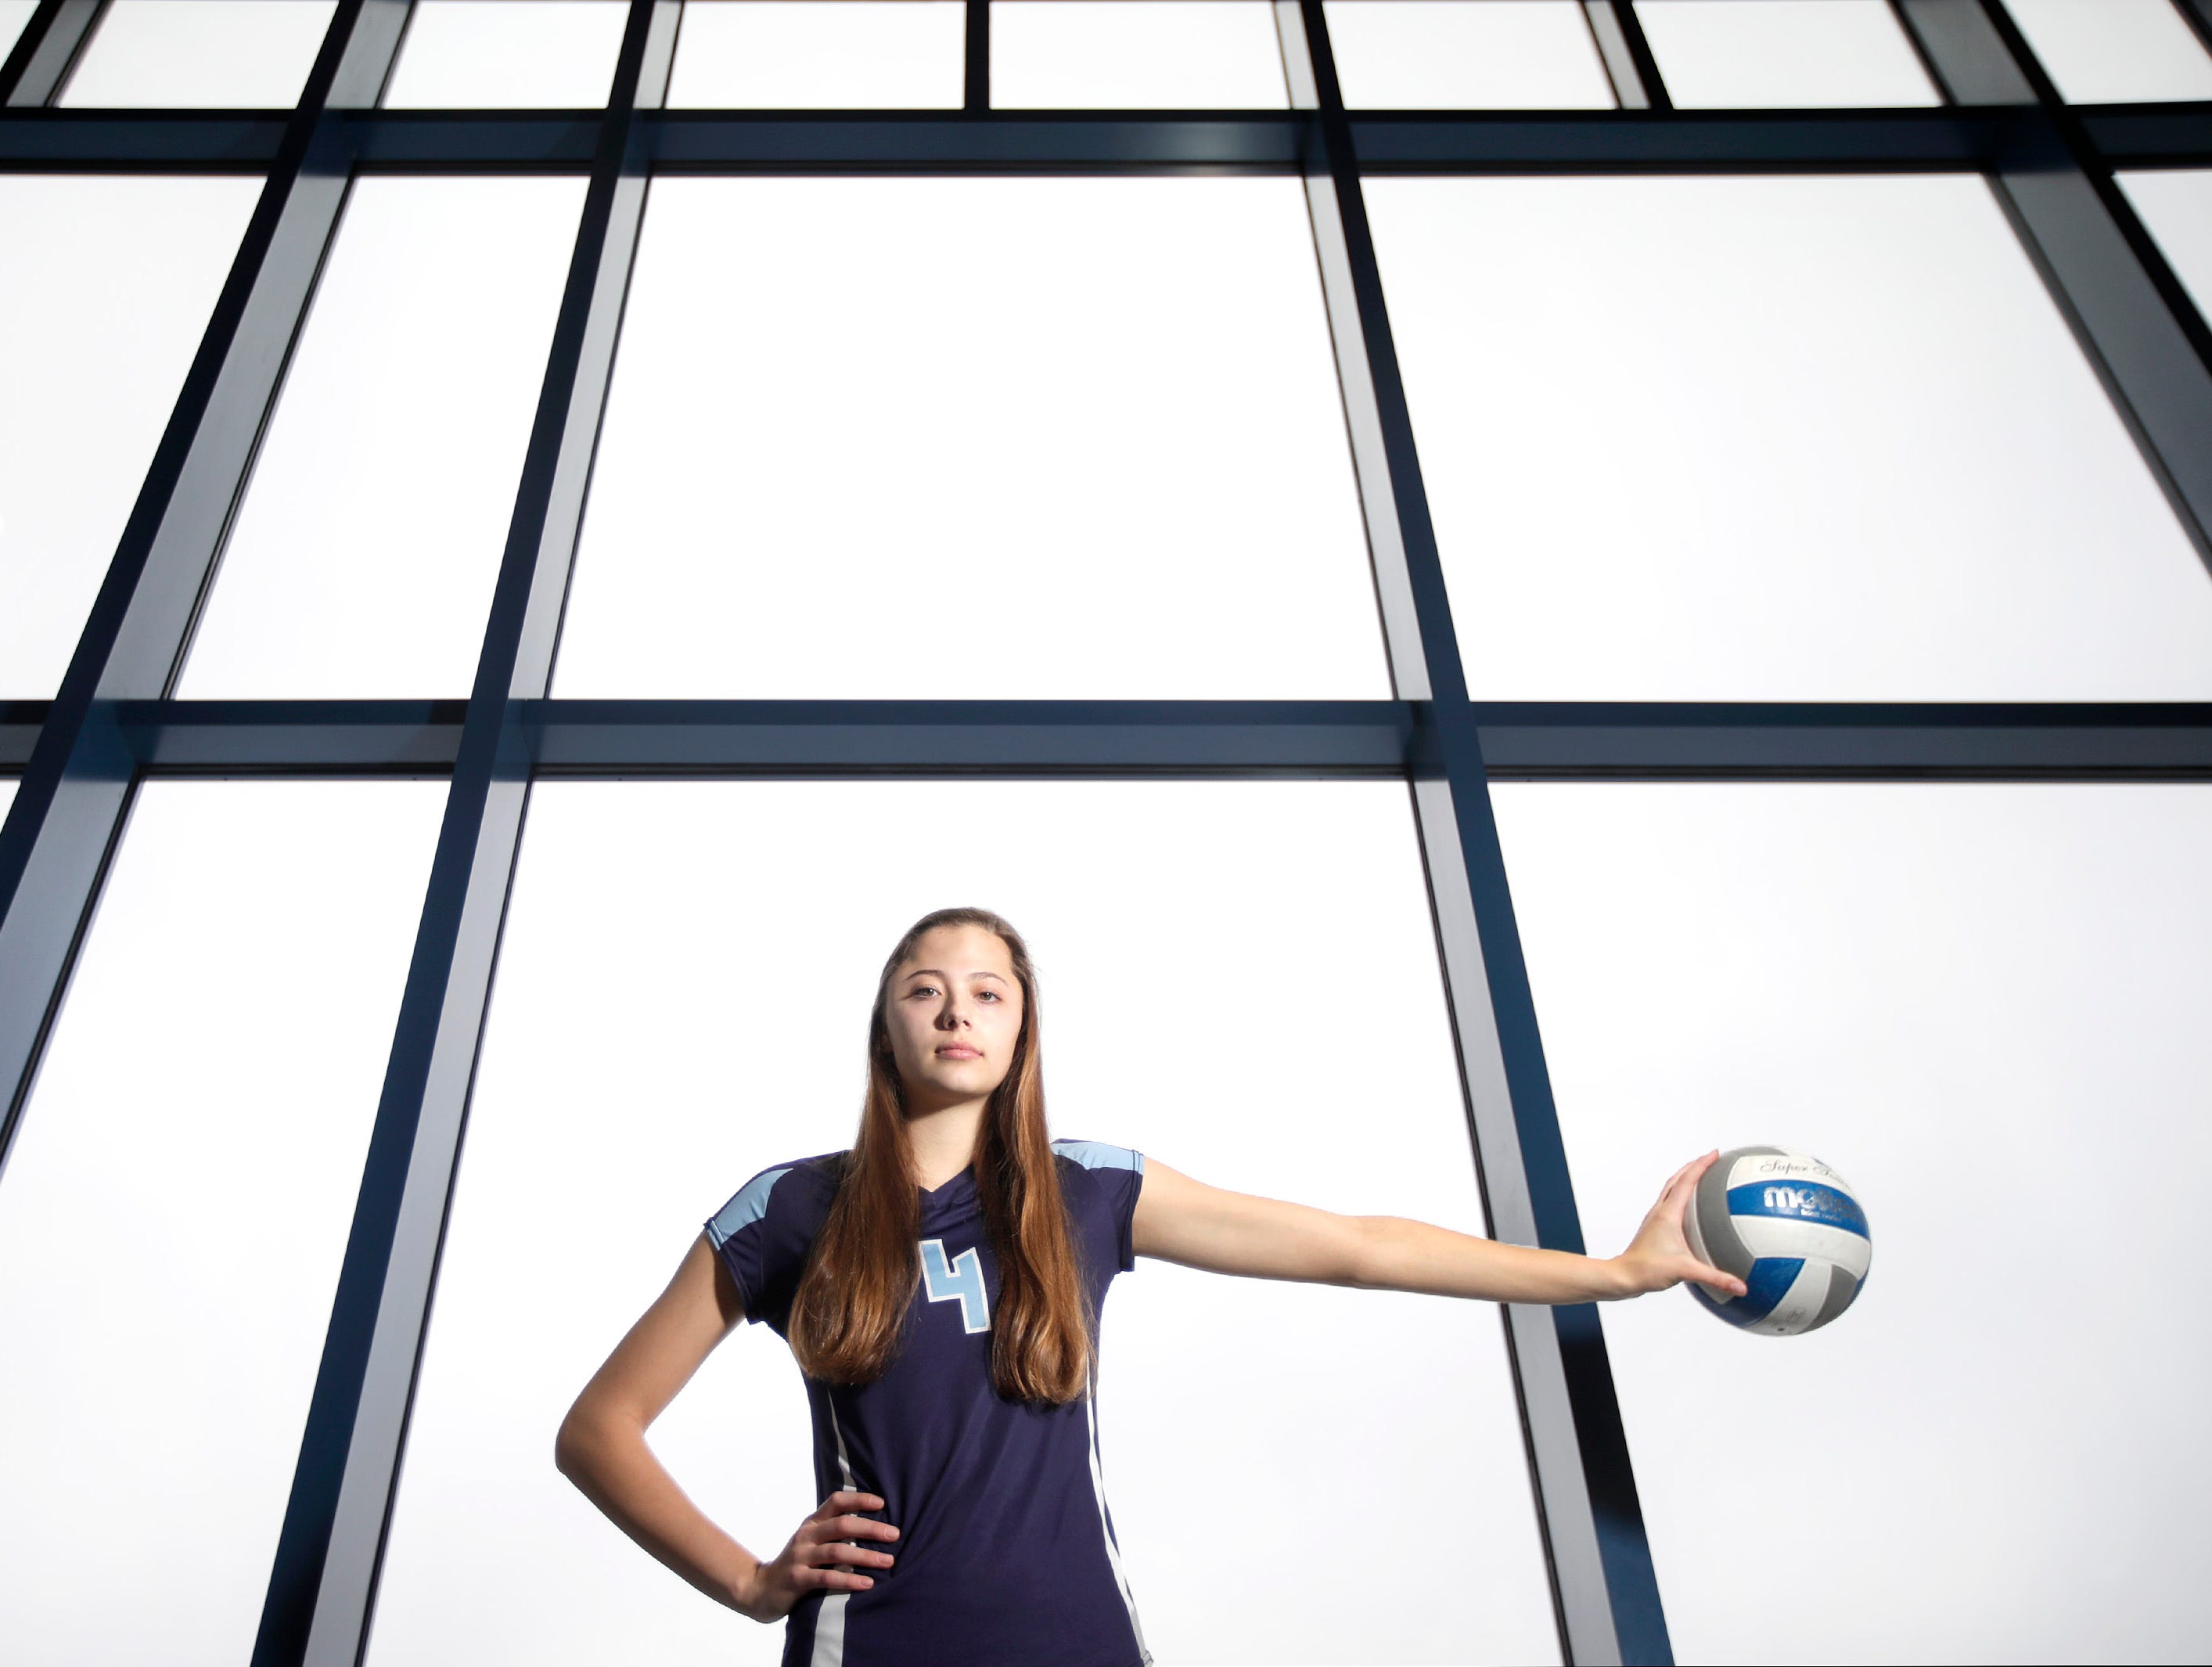 Hannah Vanden Berg, a senior at Little Chute High School, is the 2018 volleyball player of the year Wednesday, Dec. 19, 2018, Little Chute, Wis.Danny Damiani/USA TODAY NETWORK-Wisconsin